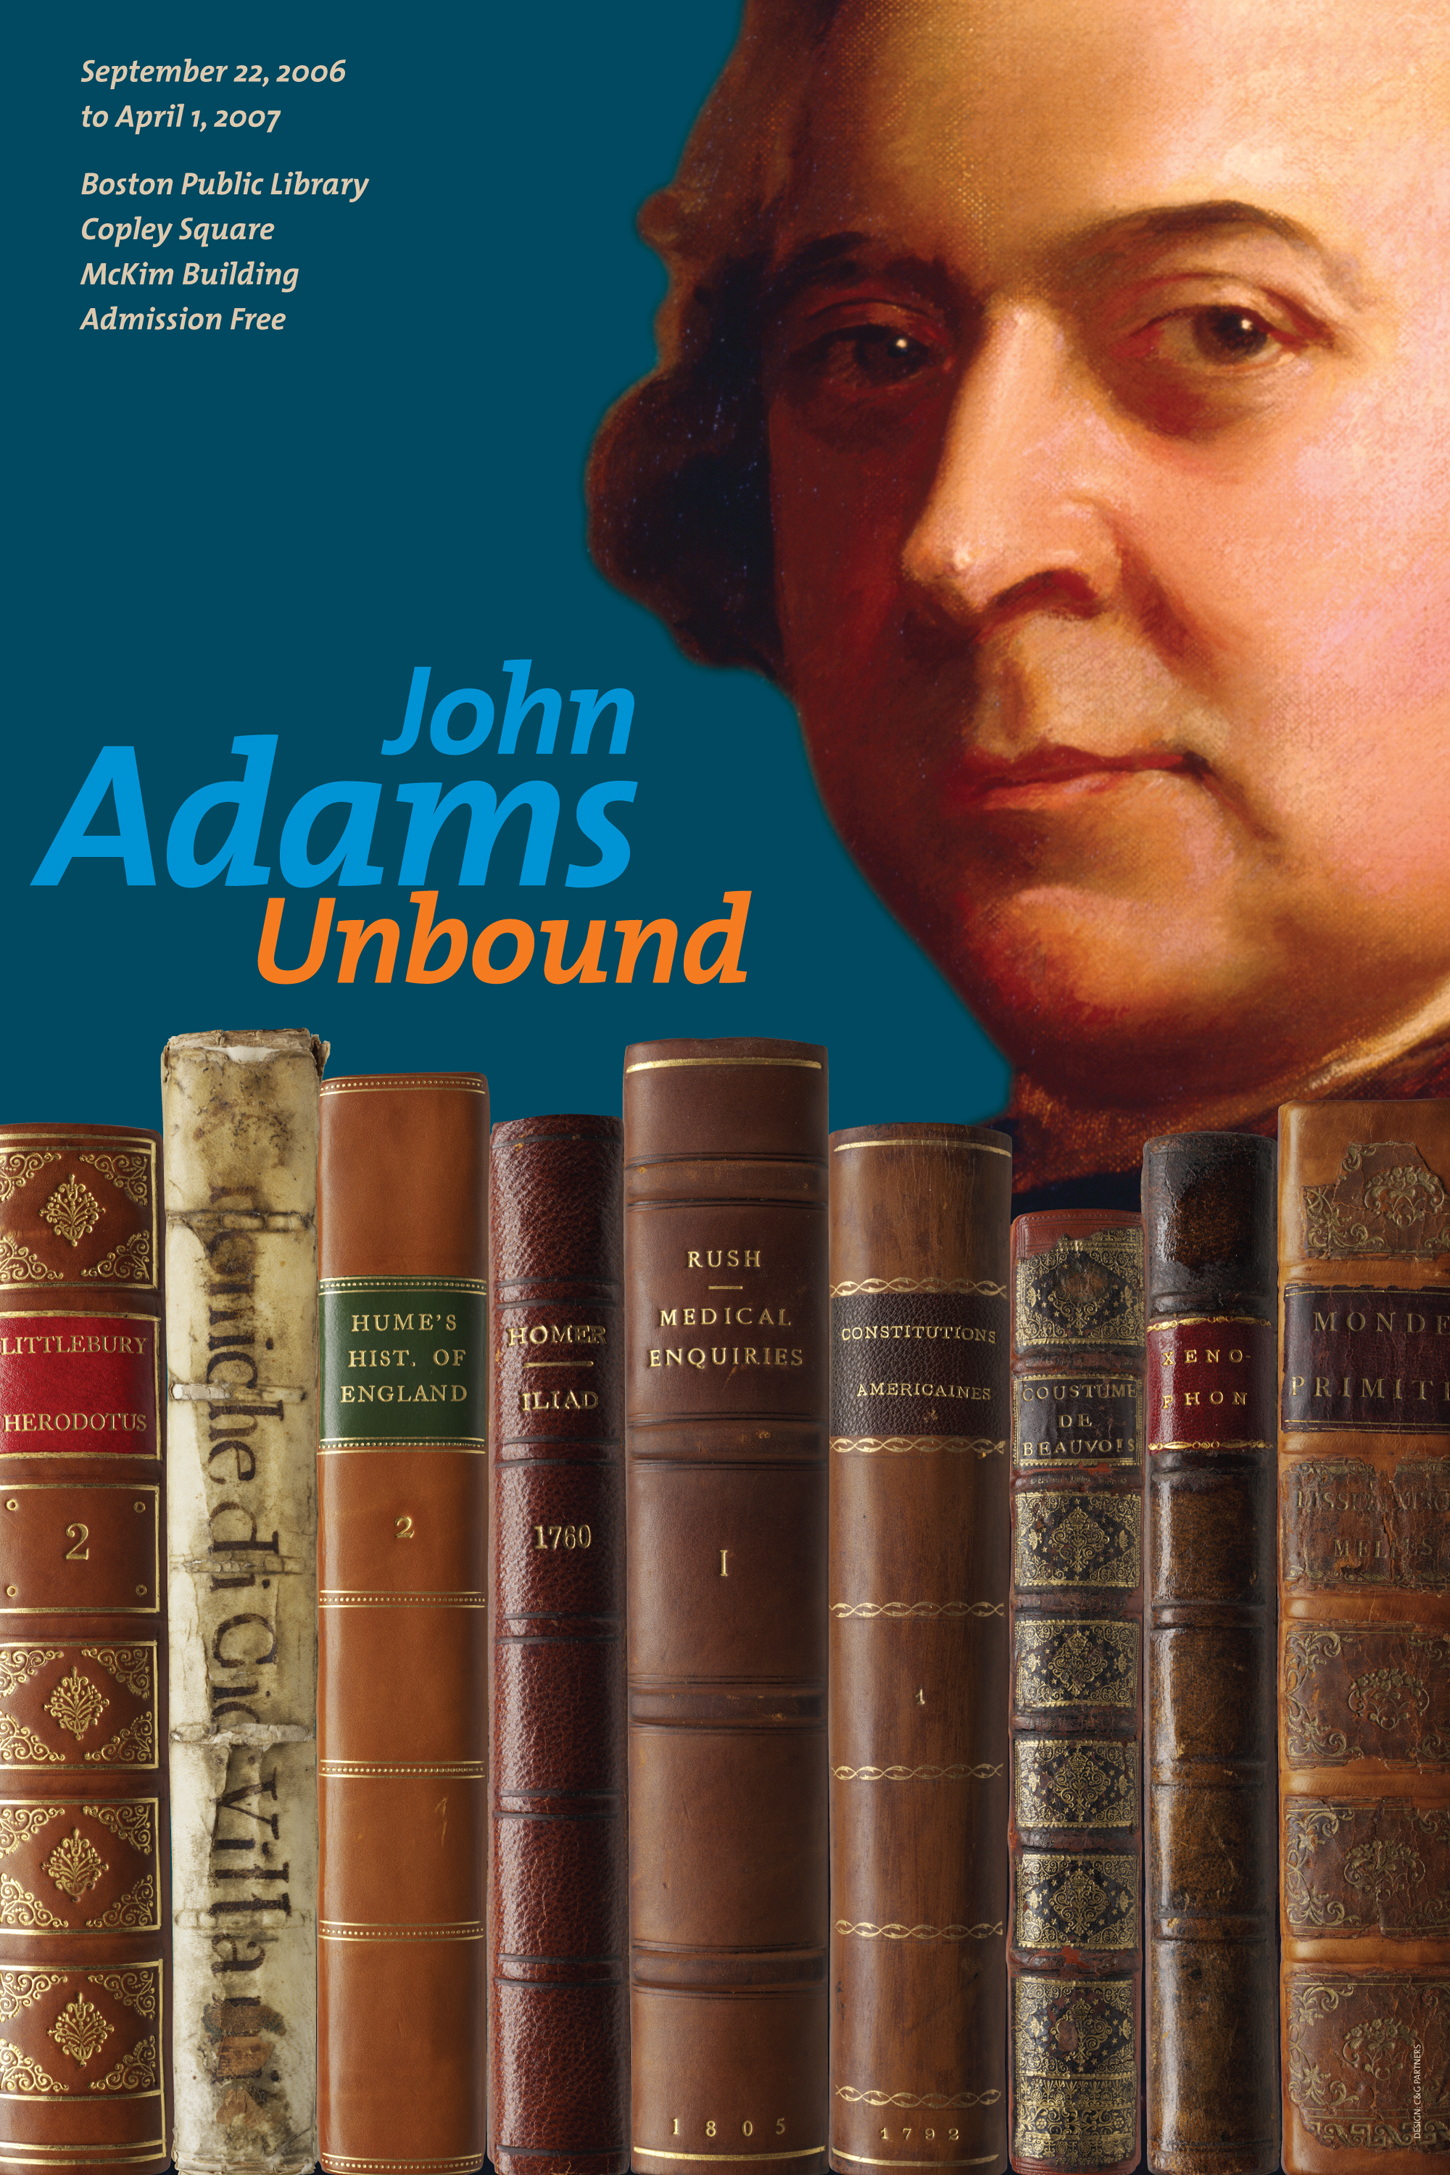 """Project image 1 for """"John Adams Unbound"""" Print, Boston Public Library"""